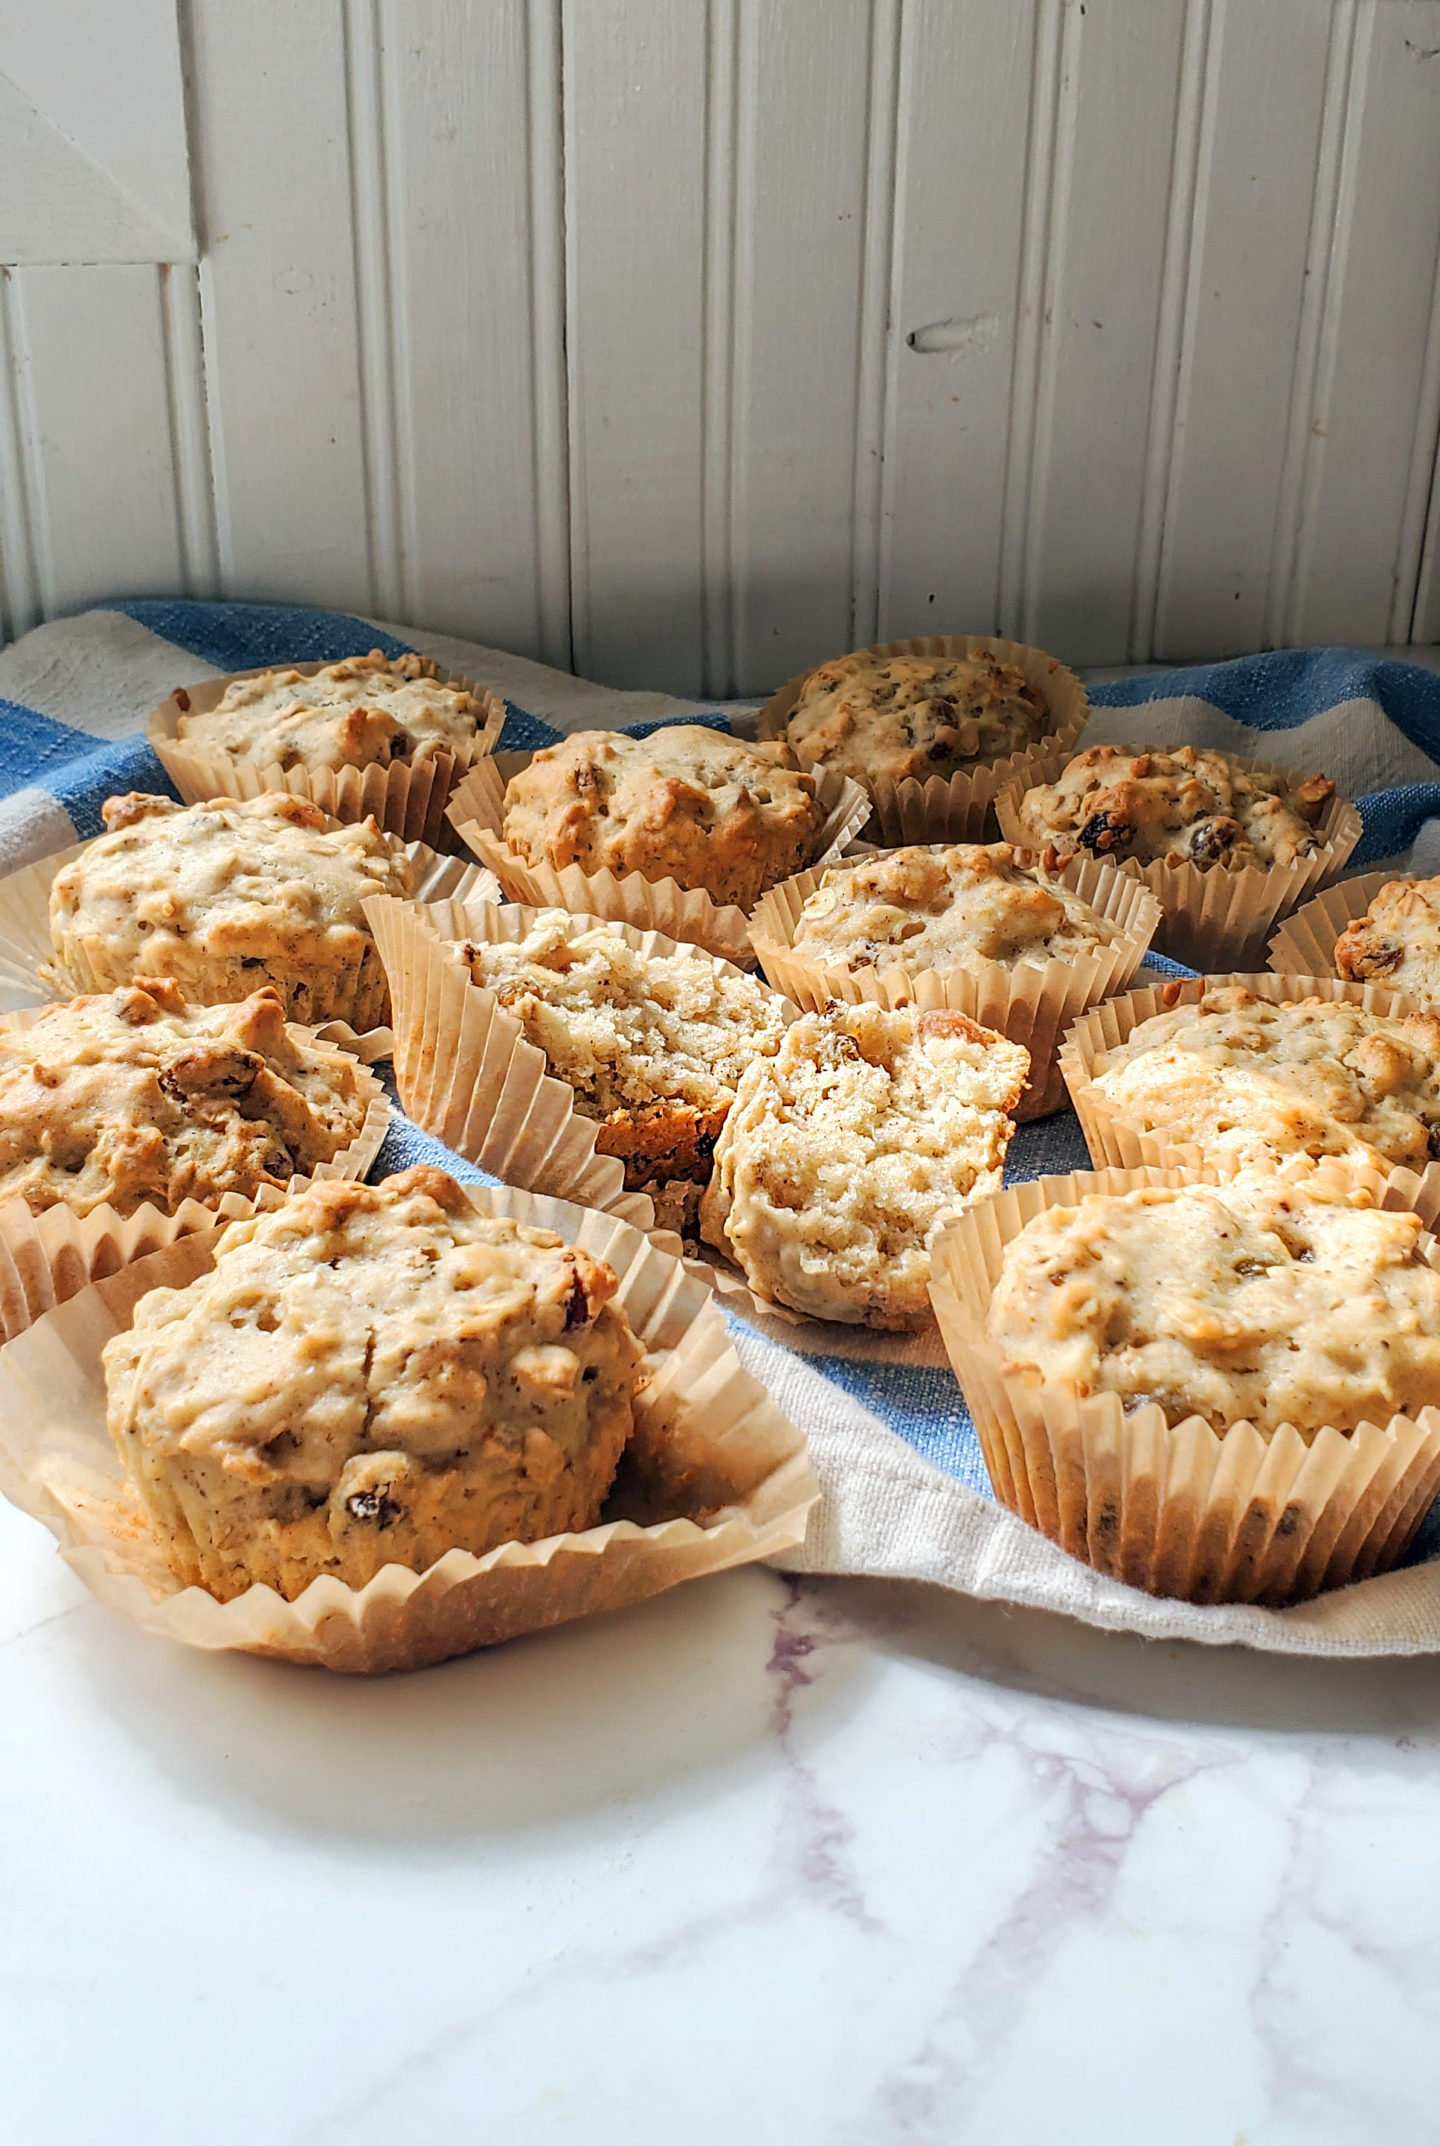 A counter full of applesauce muffins